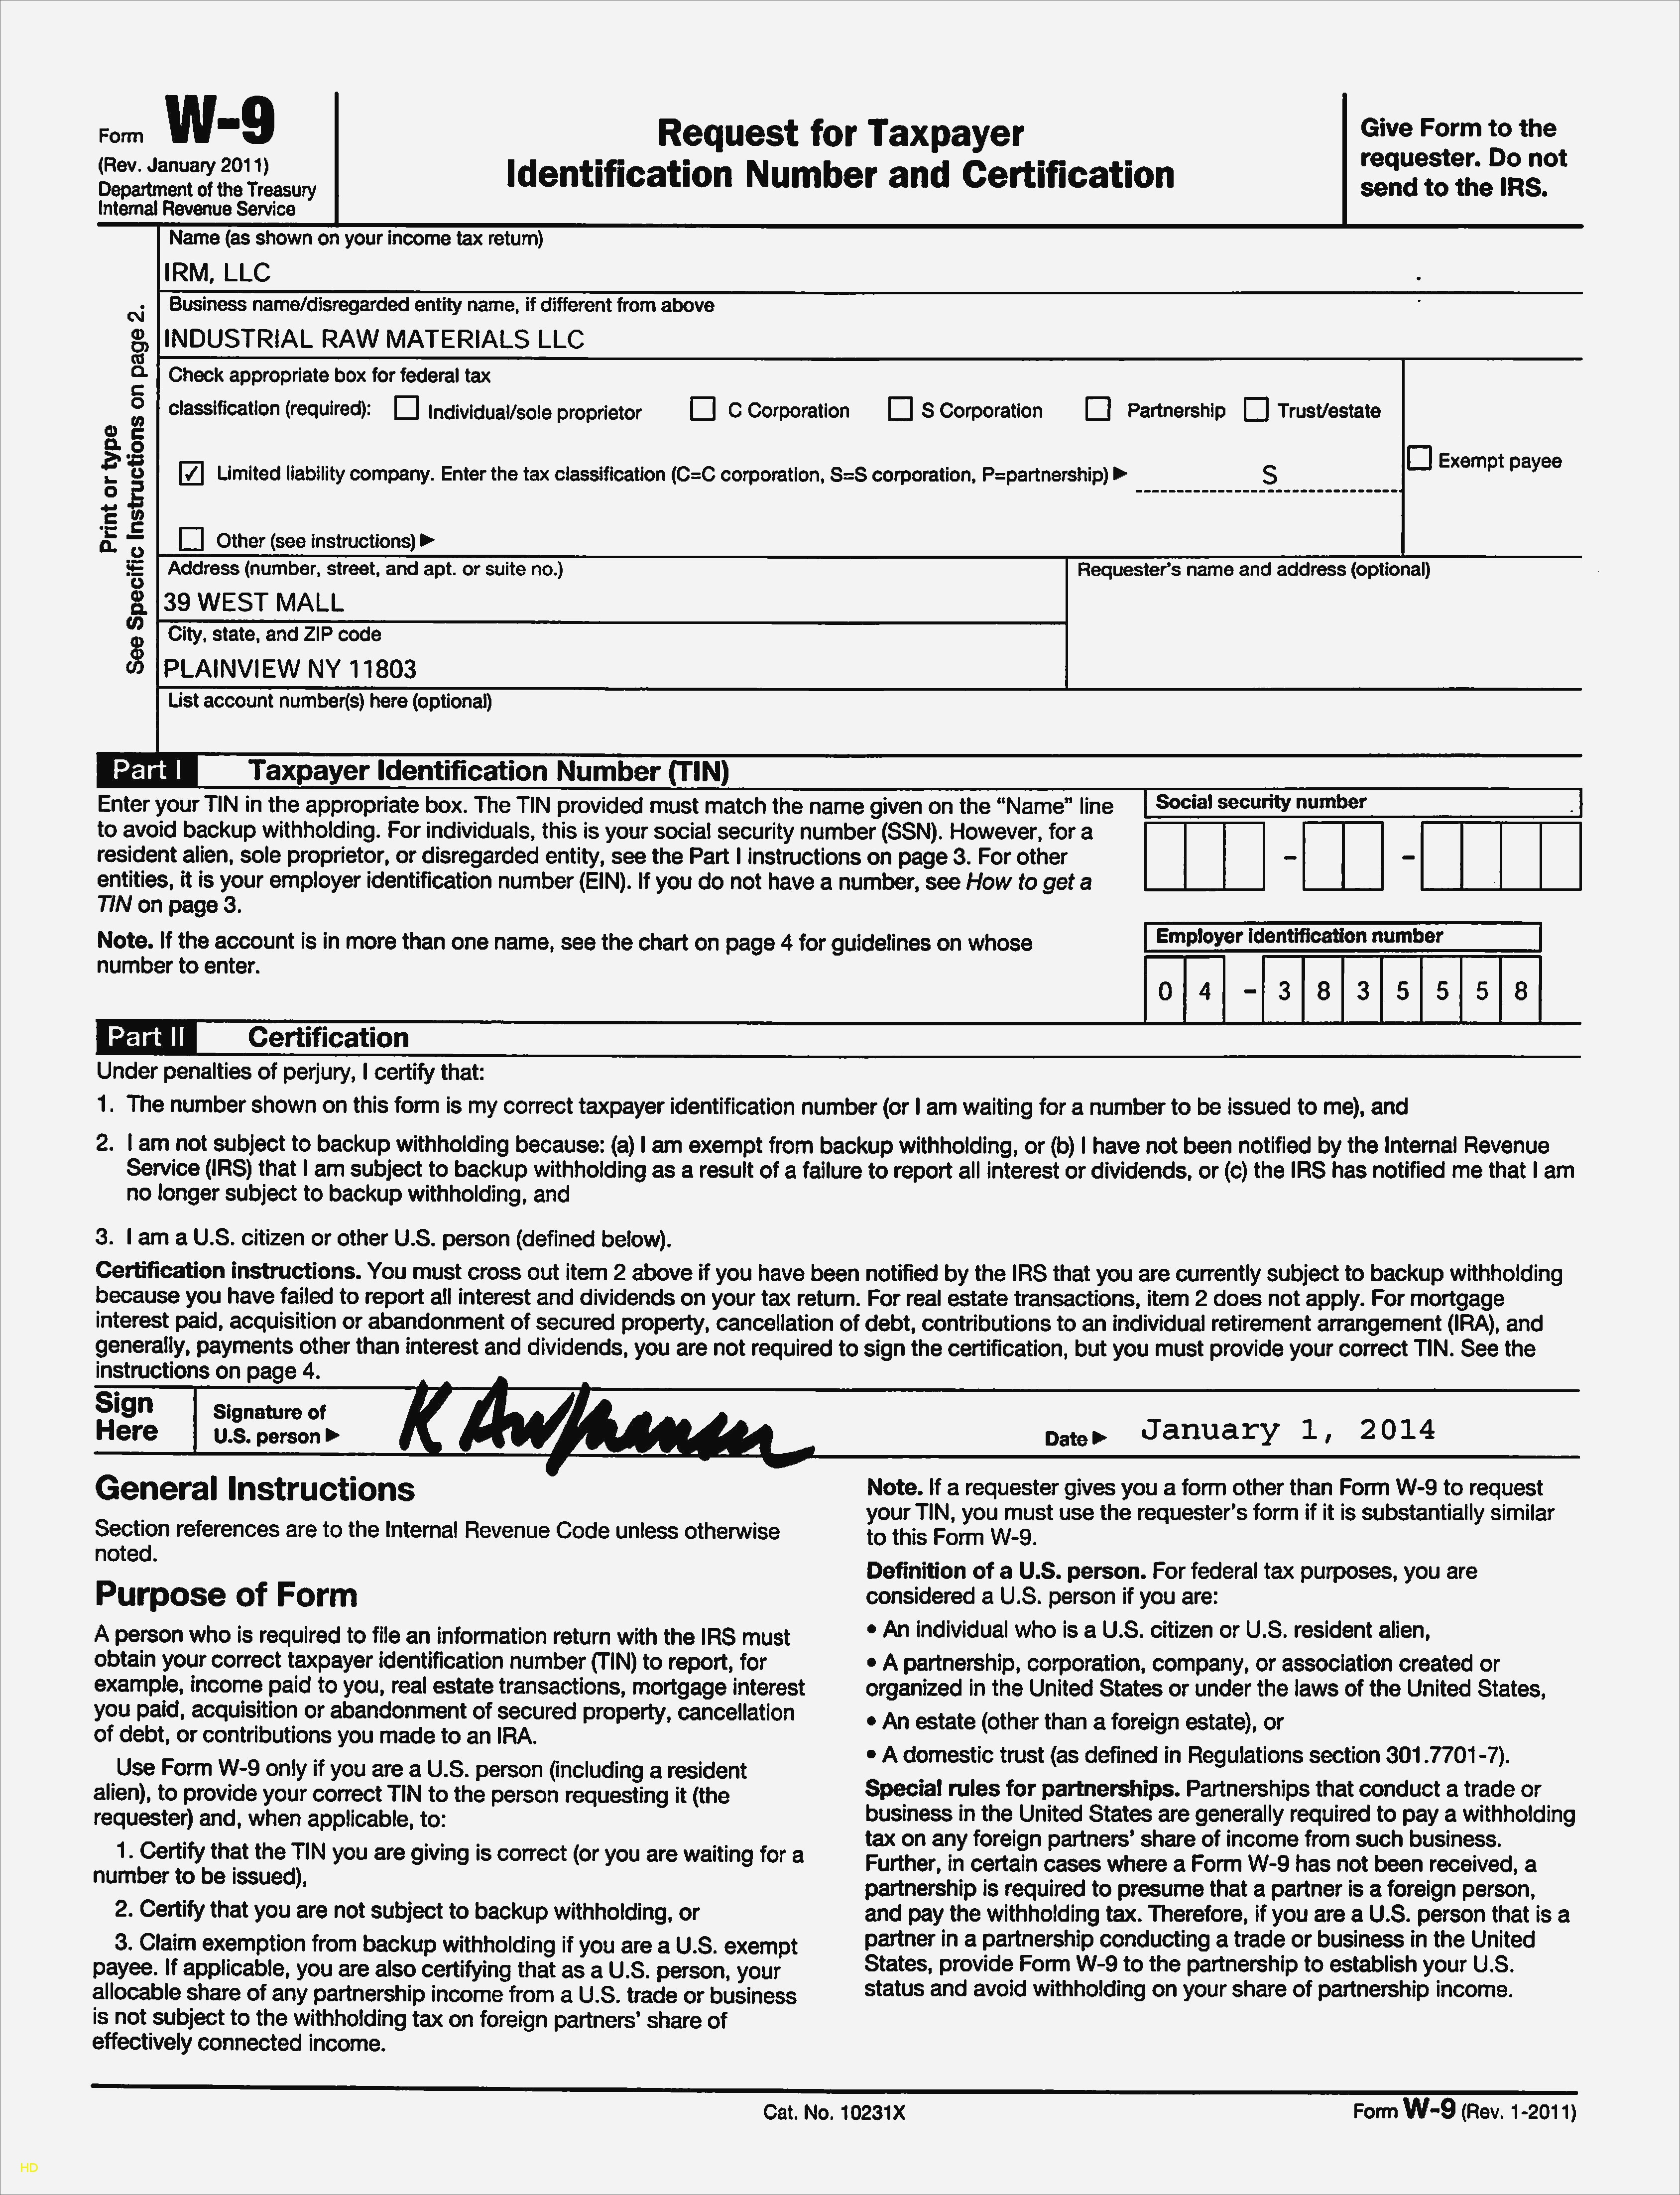 irs form w 9 download 2018